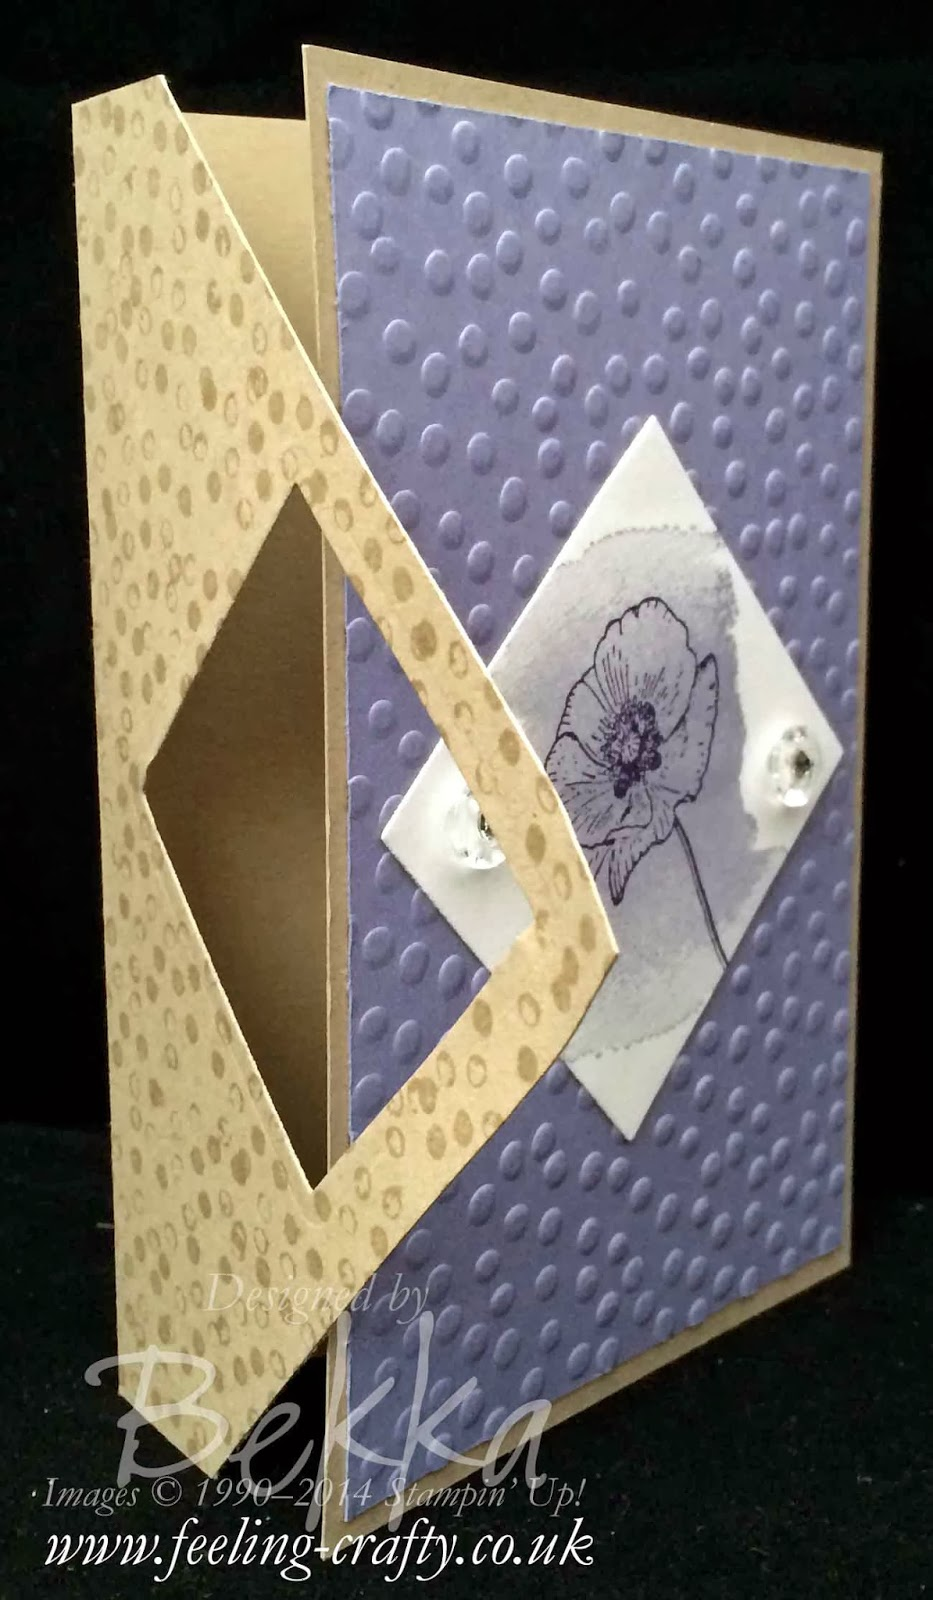 Happy Watercolor Fancy Fold Card by UK bases Stampin' Up! Demonstrator Bekka Prideaux - check out her blog for lots of great ideas